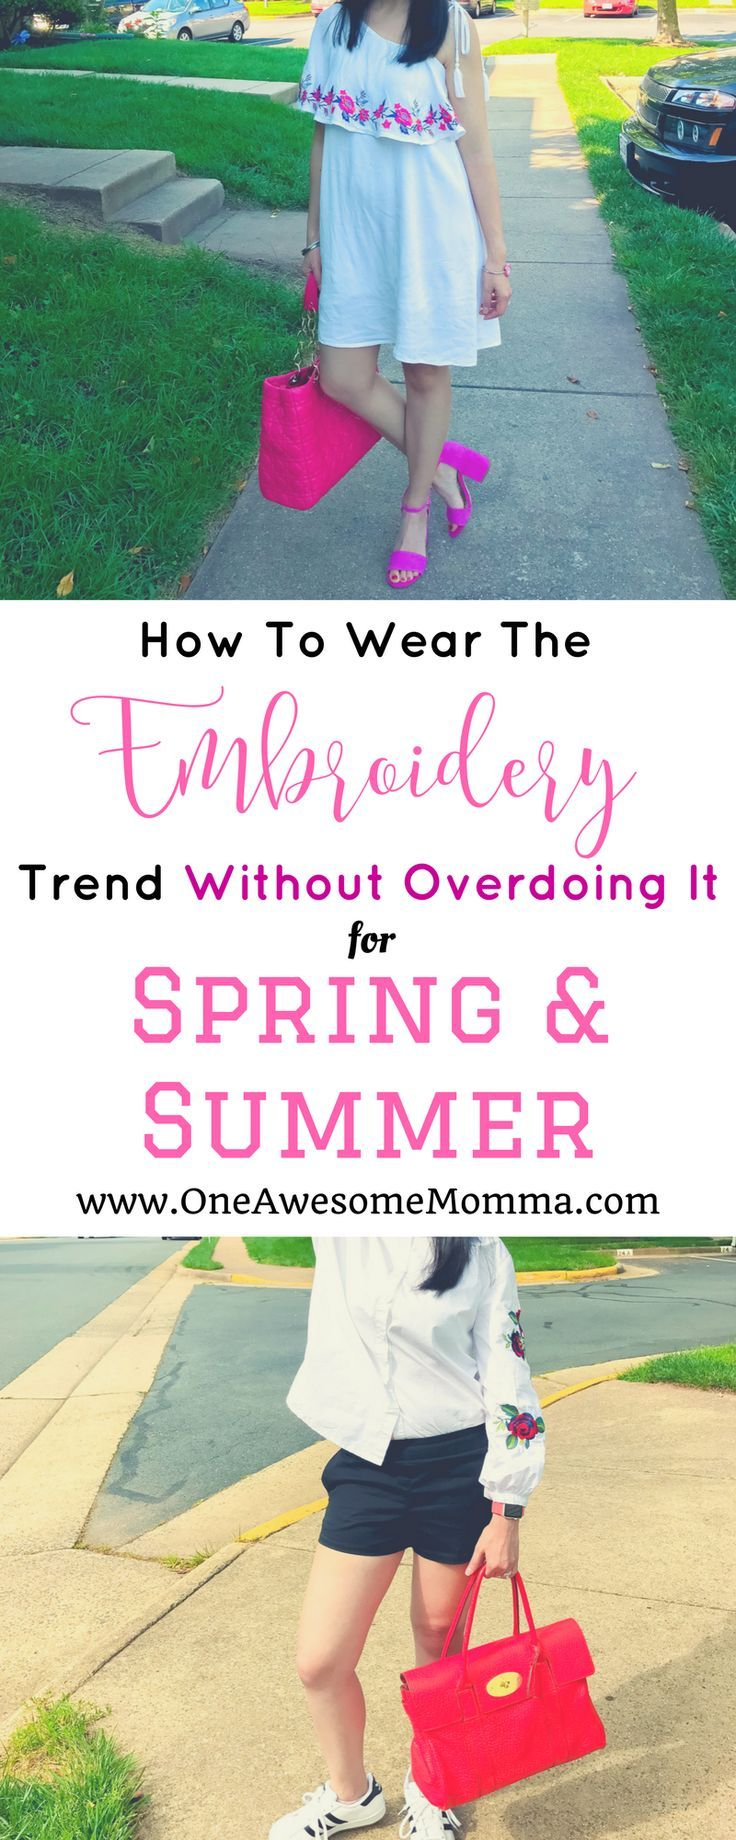 Are you wondering how to wear the embroidery trend without overdoing it for spring and summer? Check out these 2 summer outfits featuring embroidered button down shirt and embroidered one shoulder dress to give you outfit inspirations on how to wear this